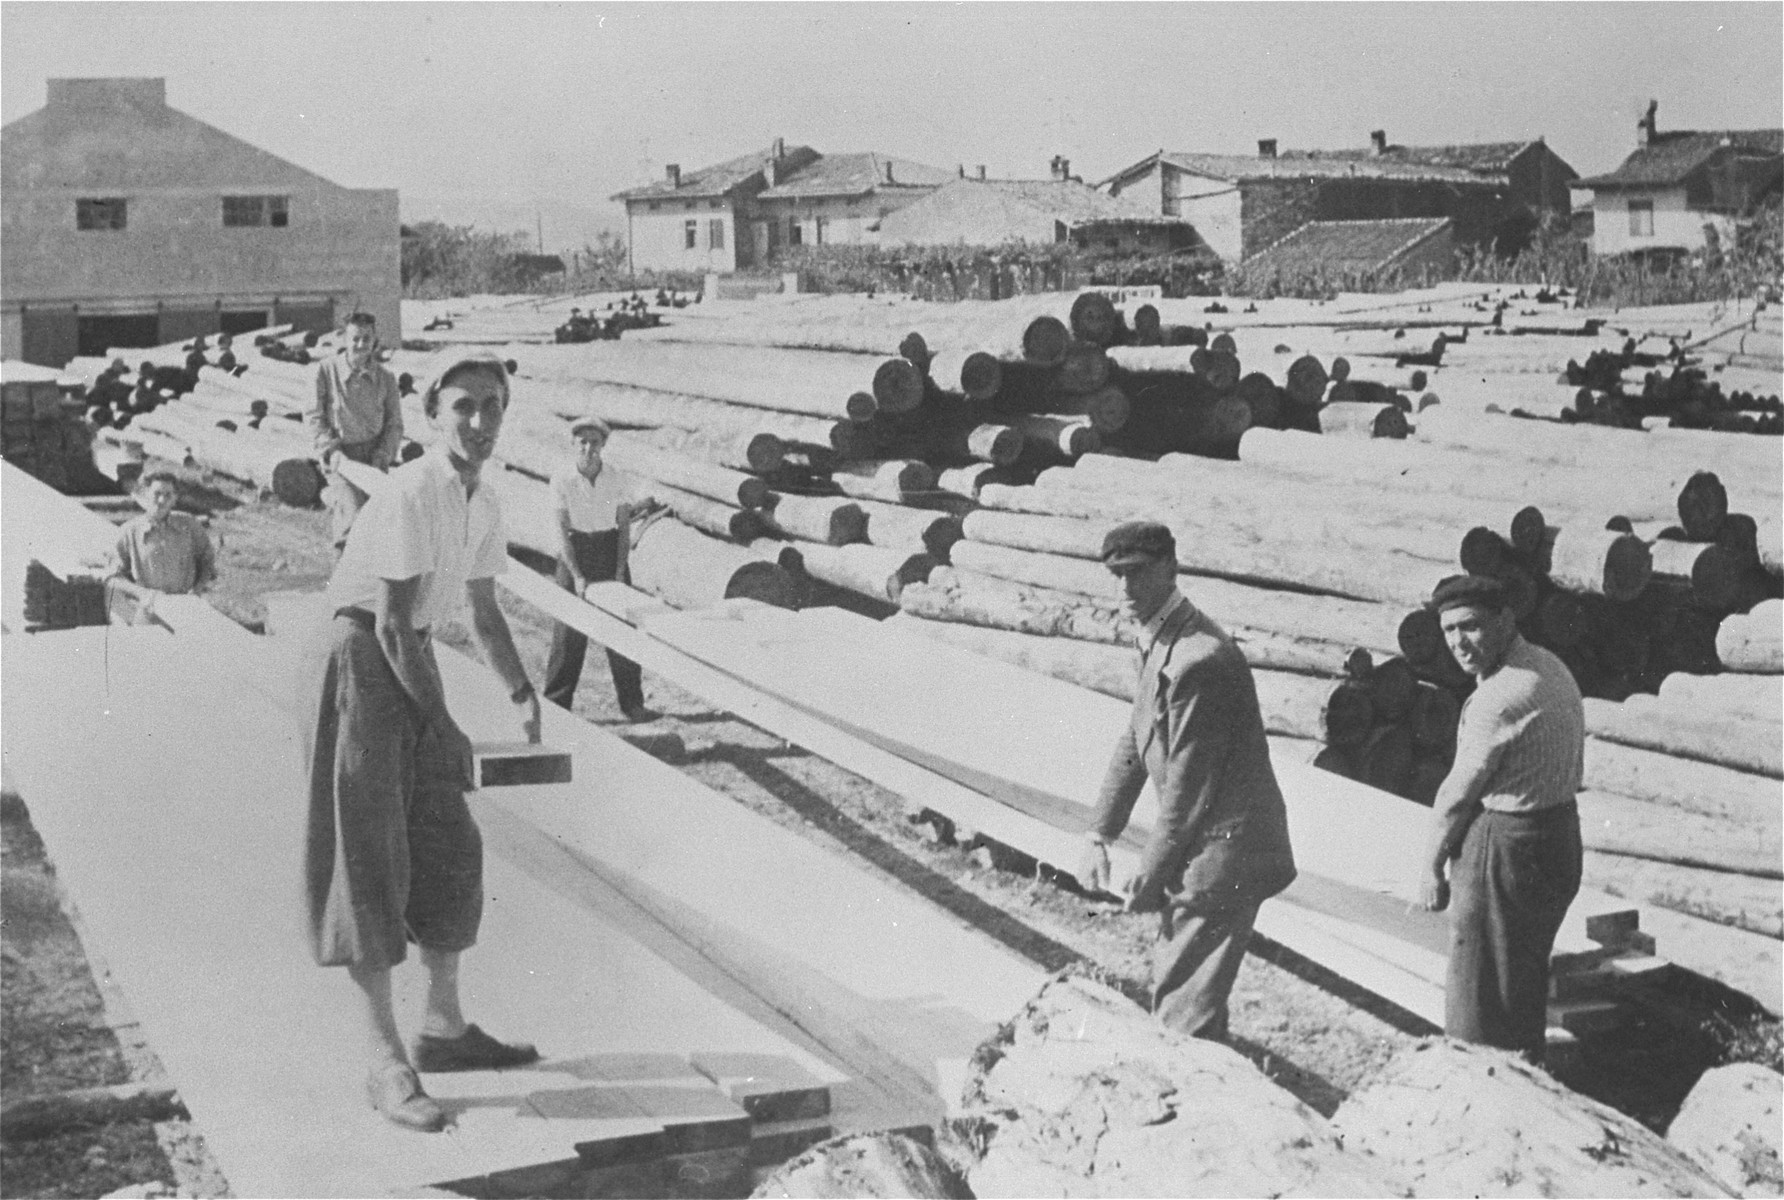 Italian Jews at forced labor at a lumber mill in Gorizia, Italy.  Among those pictured are Rubin Rotstein (far right) and Marcello Morpugo.